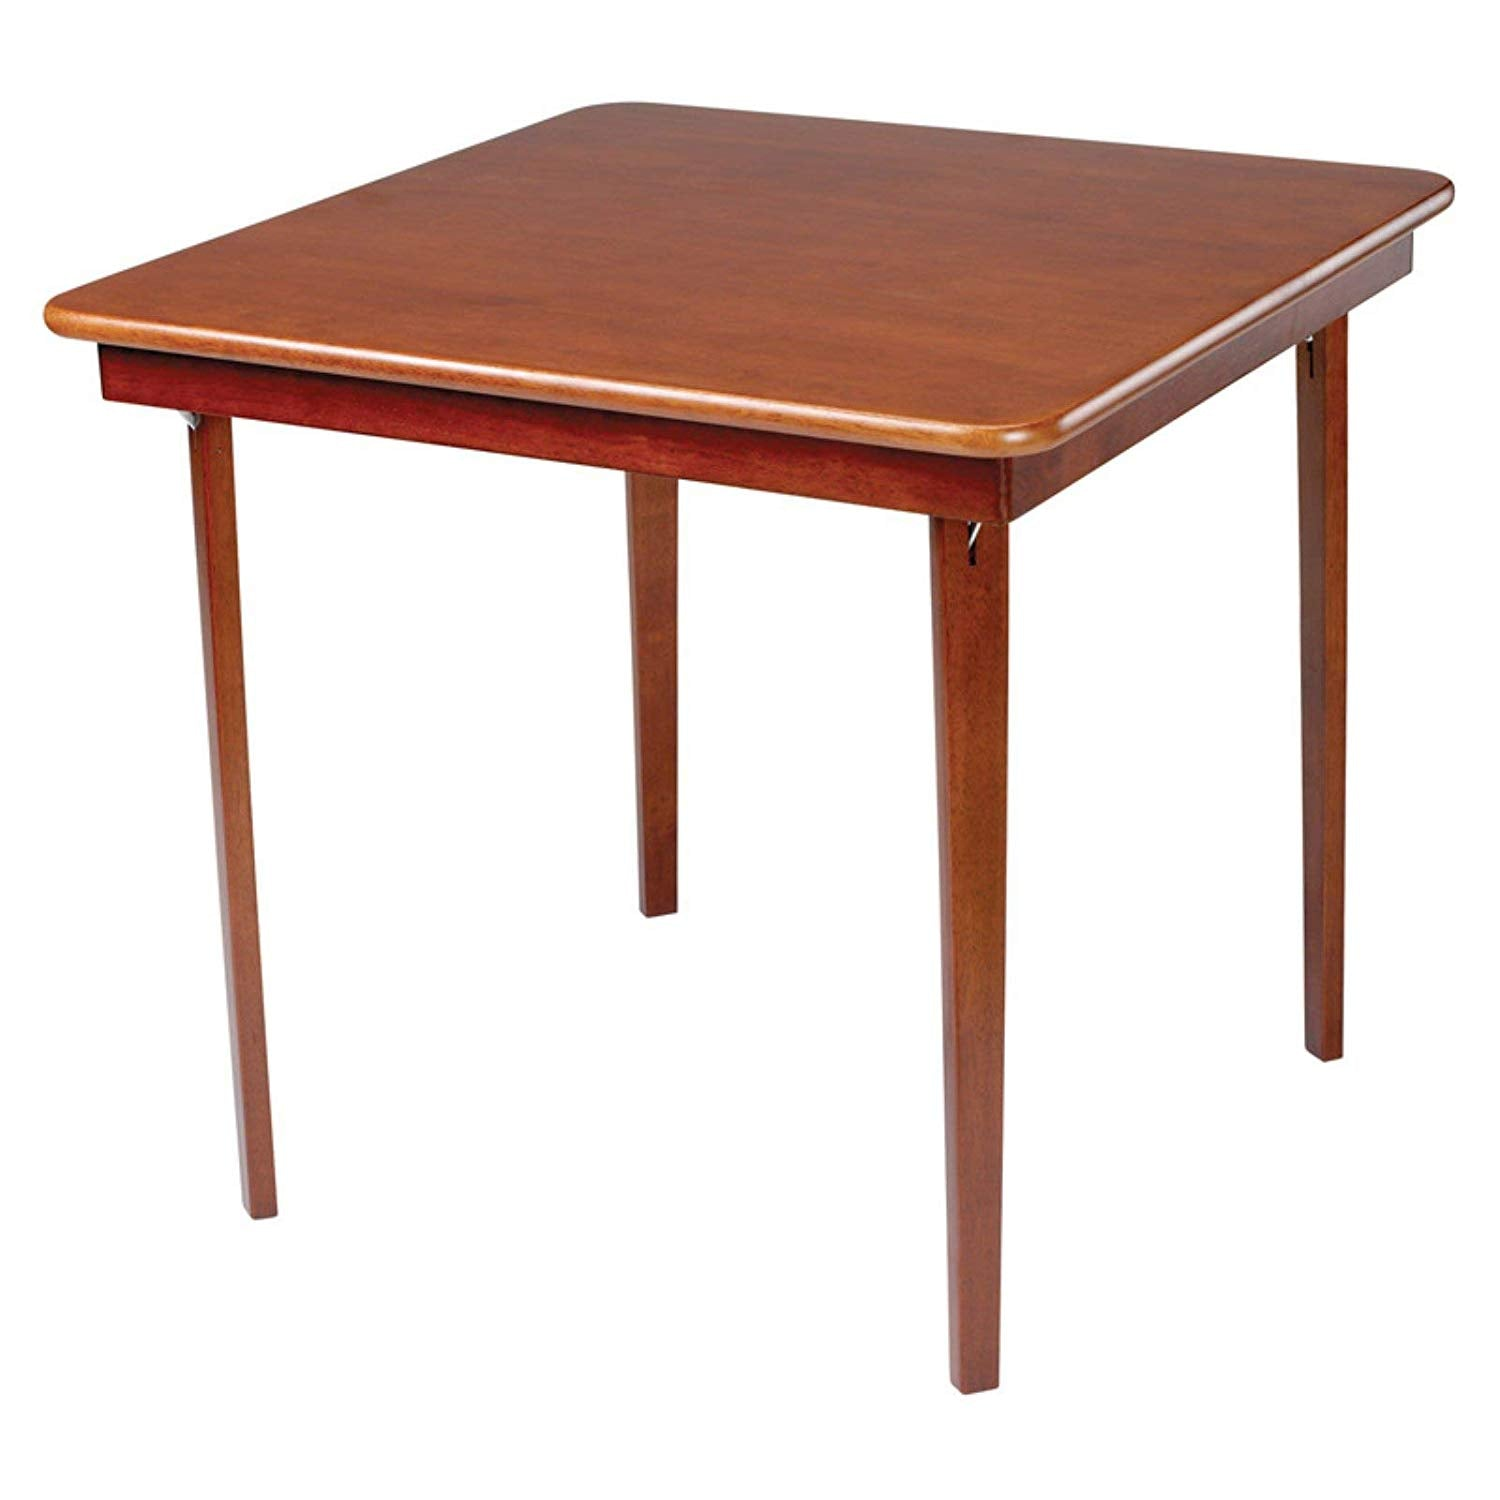 MECO 0056.00791 STAKMORE Straight Edge Folding Card Table Cherry Finish,